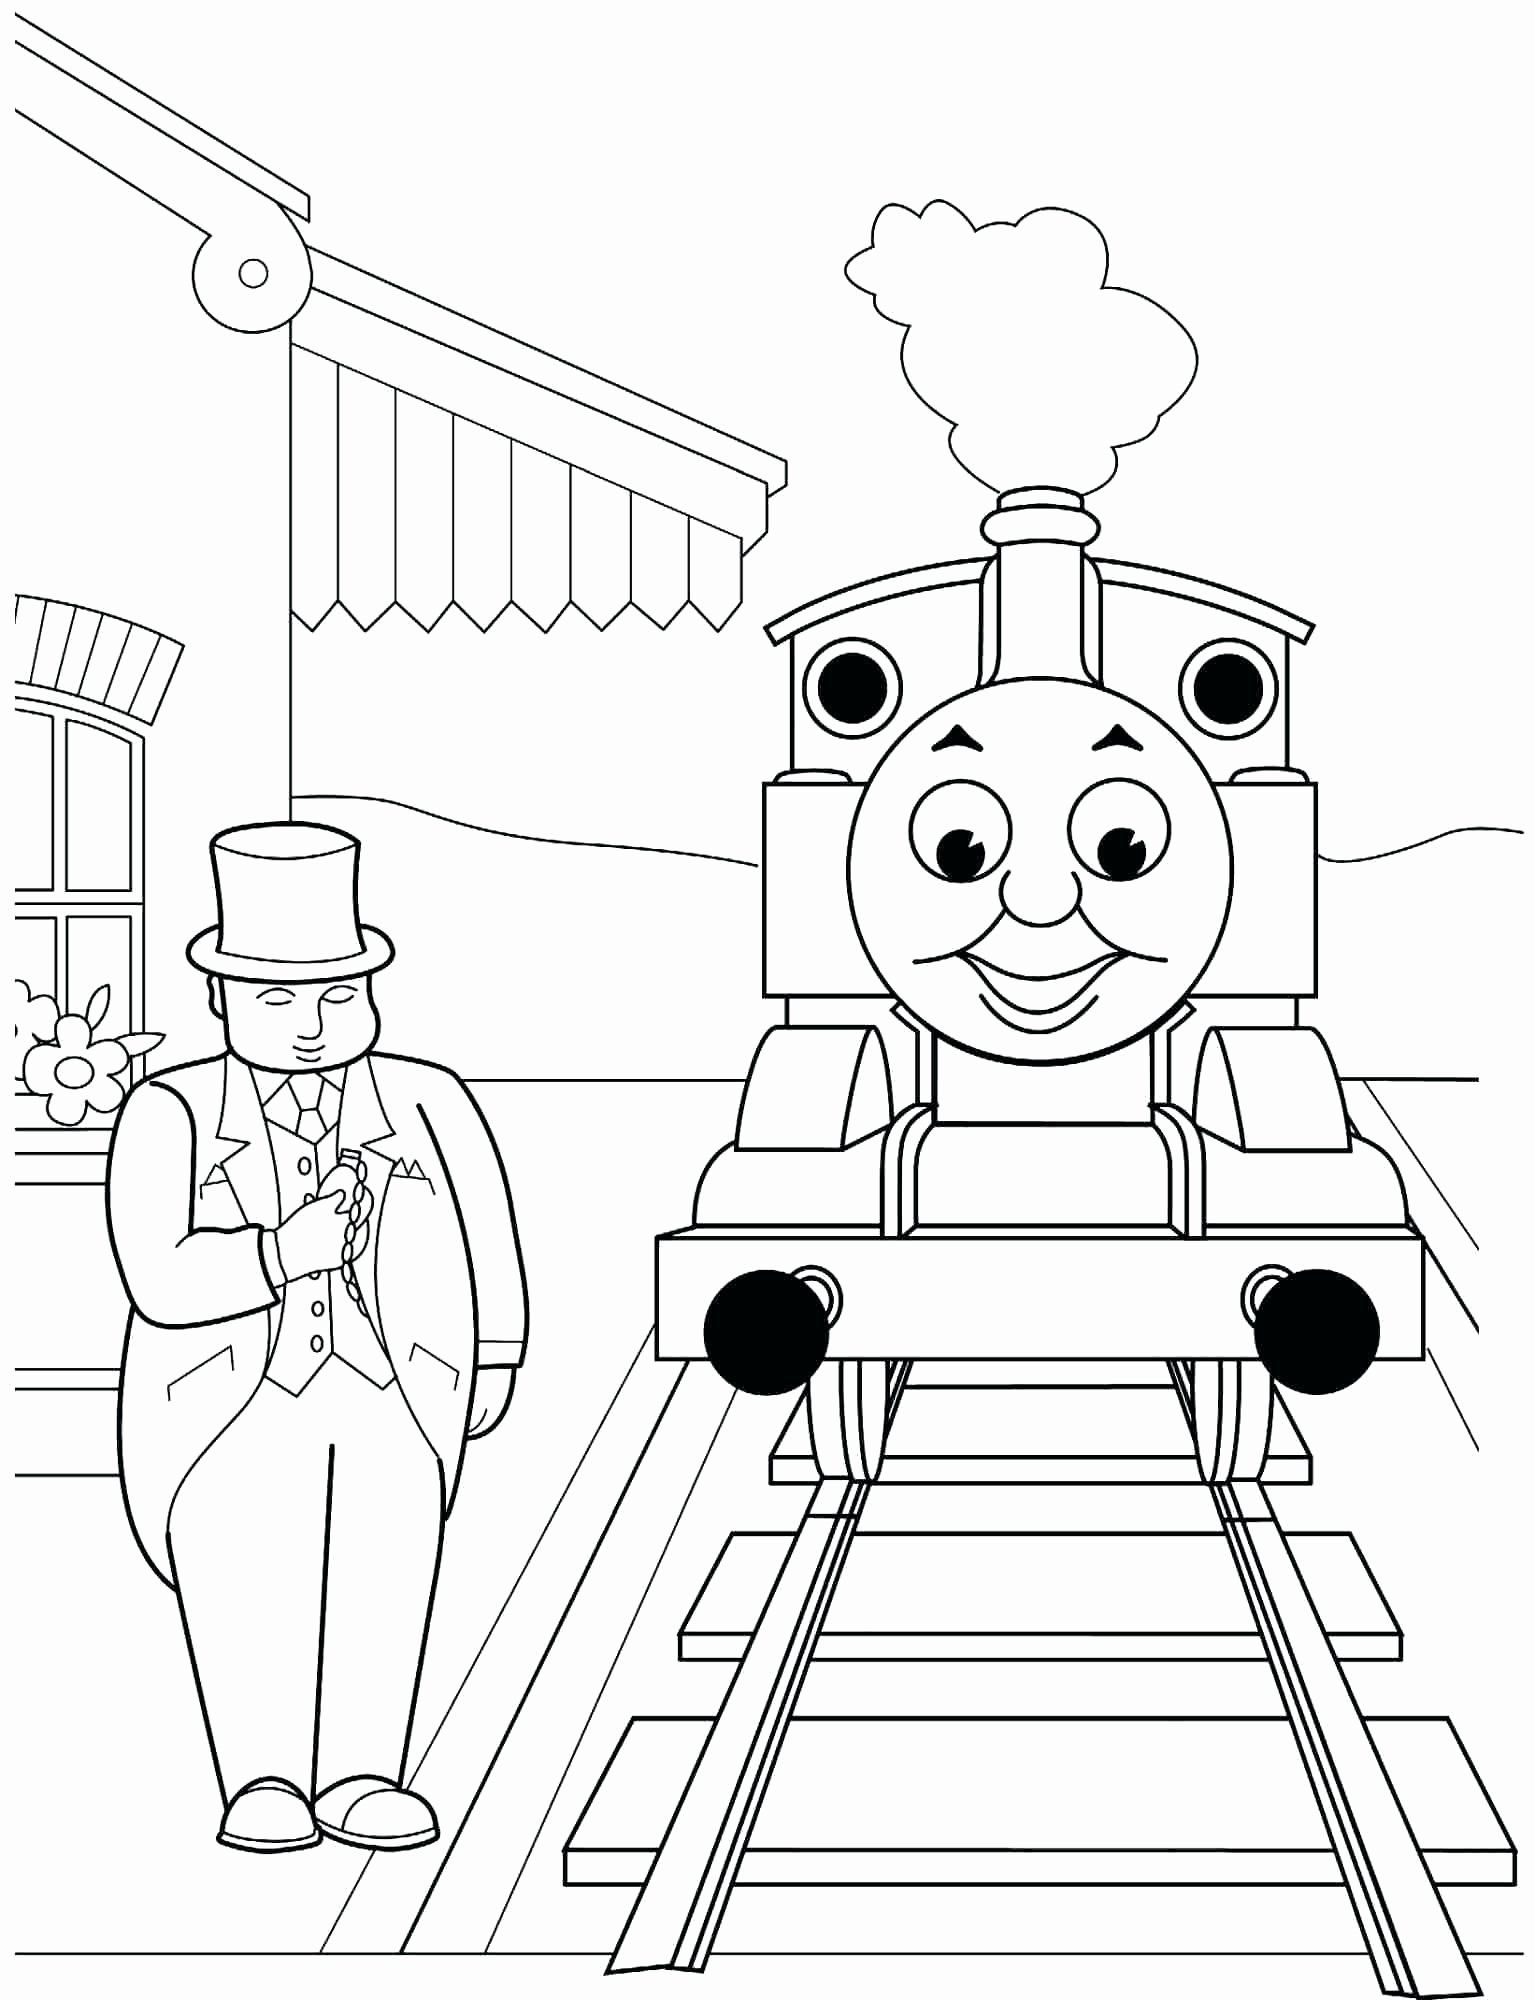 25 Stunning Blippi Coloring Pages — Conexionunder